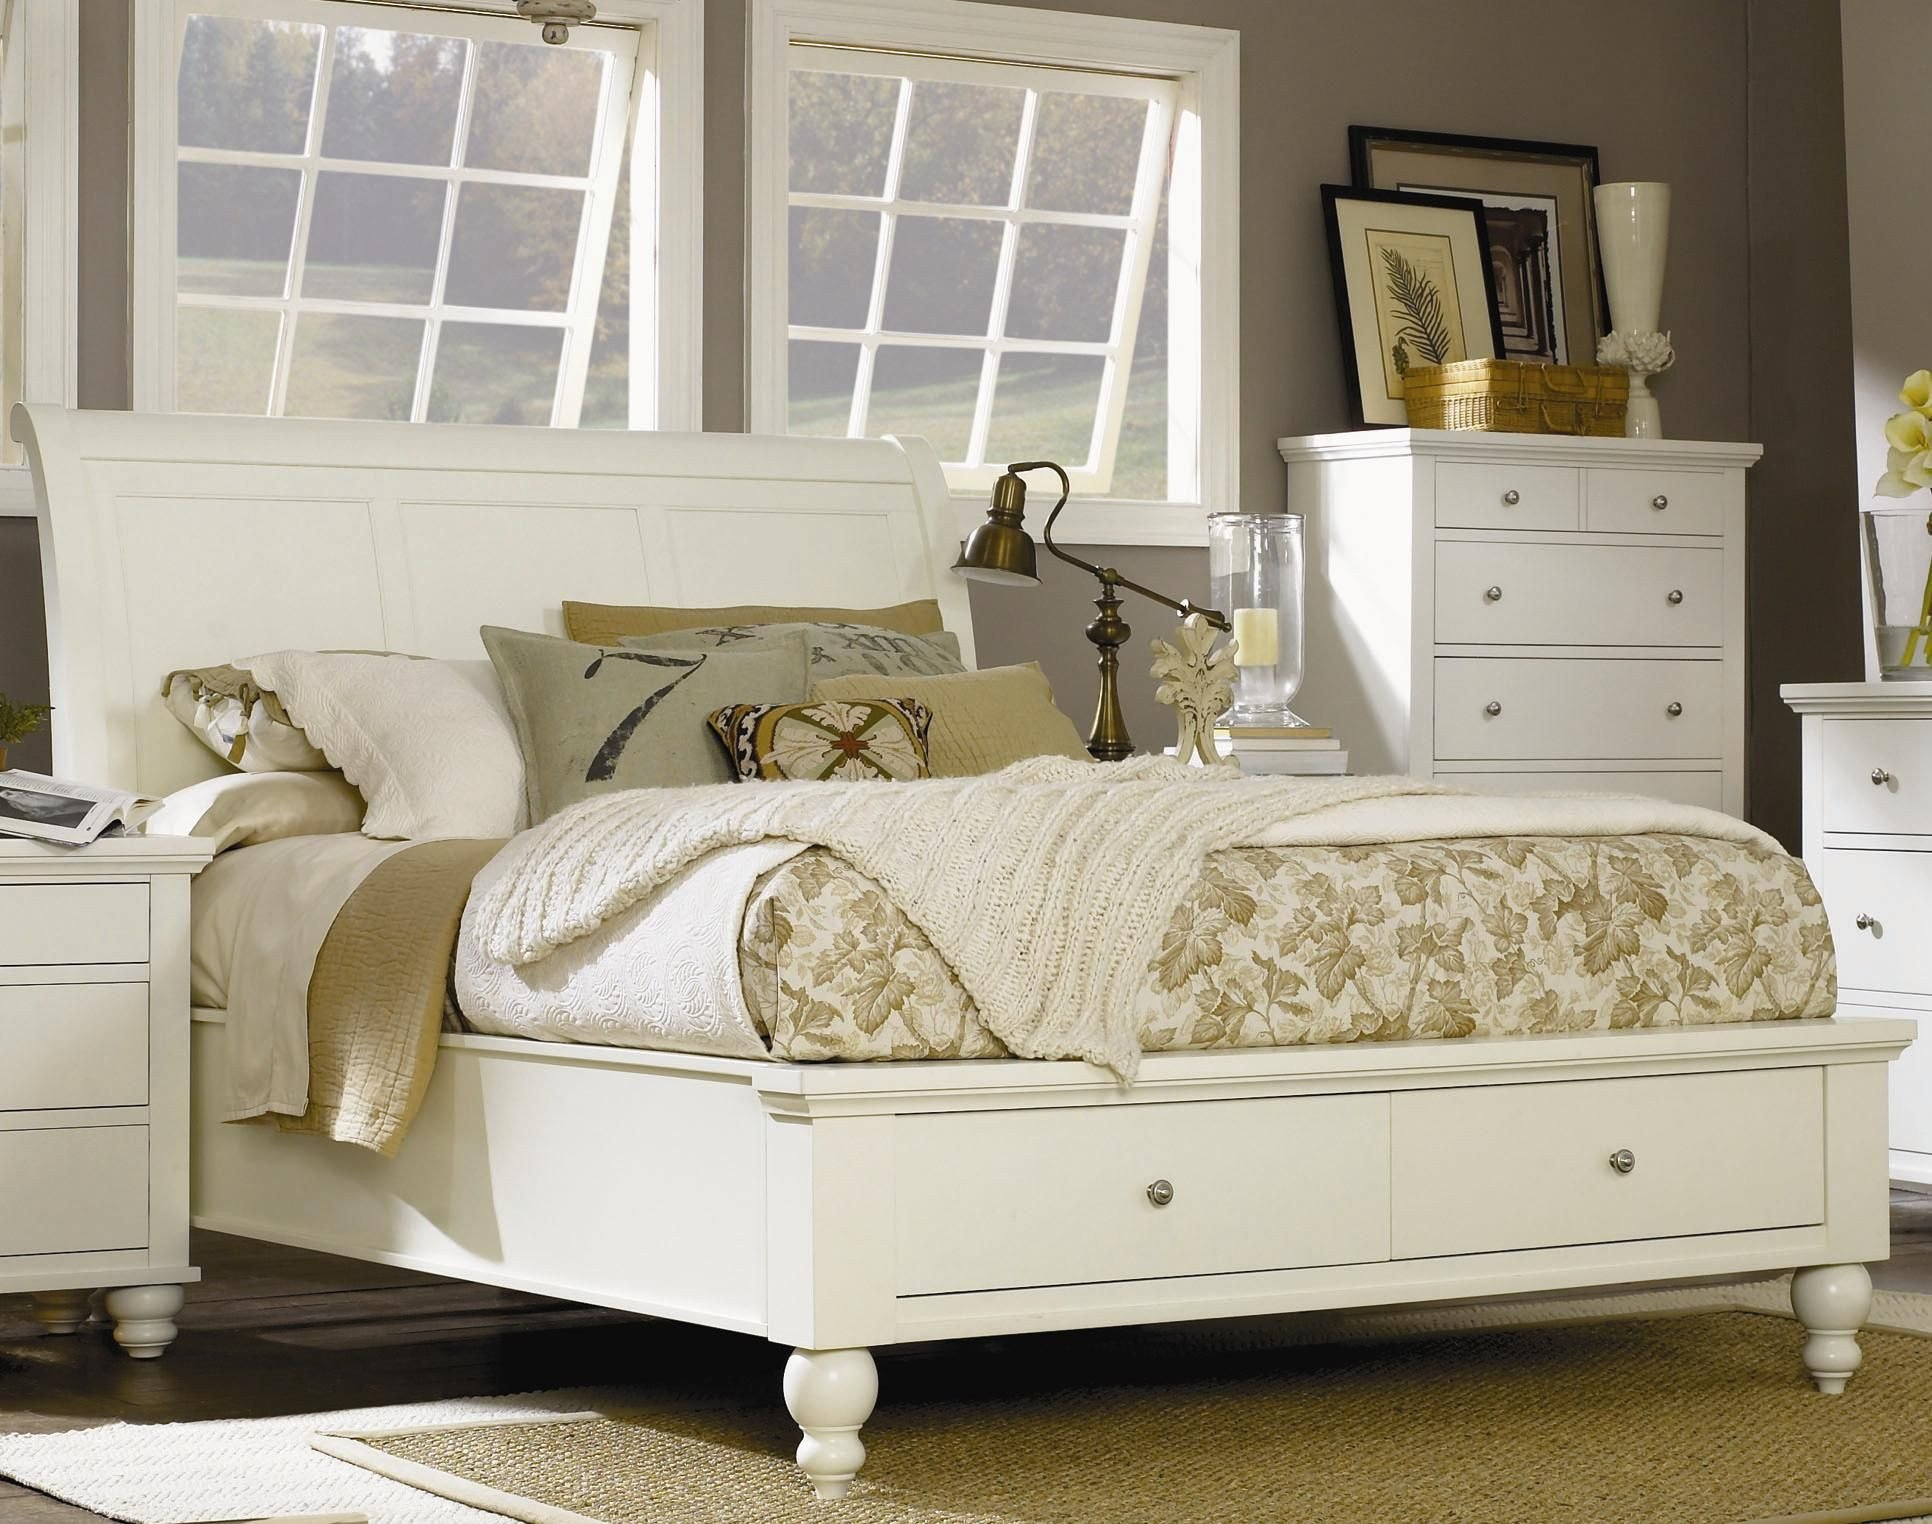 White Twin Bedroom Set New Cambridge King Size Bed with Sleigh Headboard & Drawer